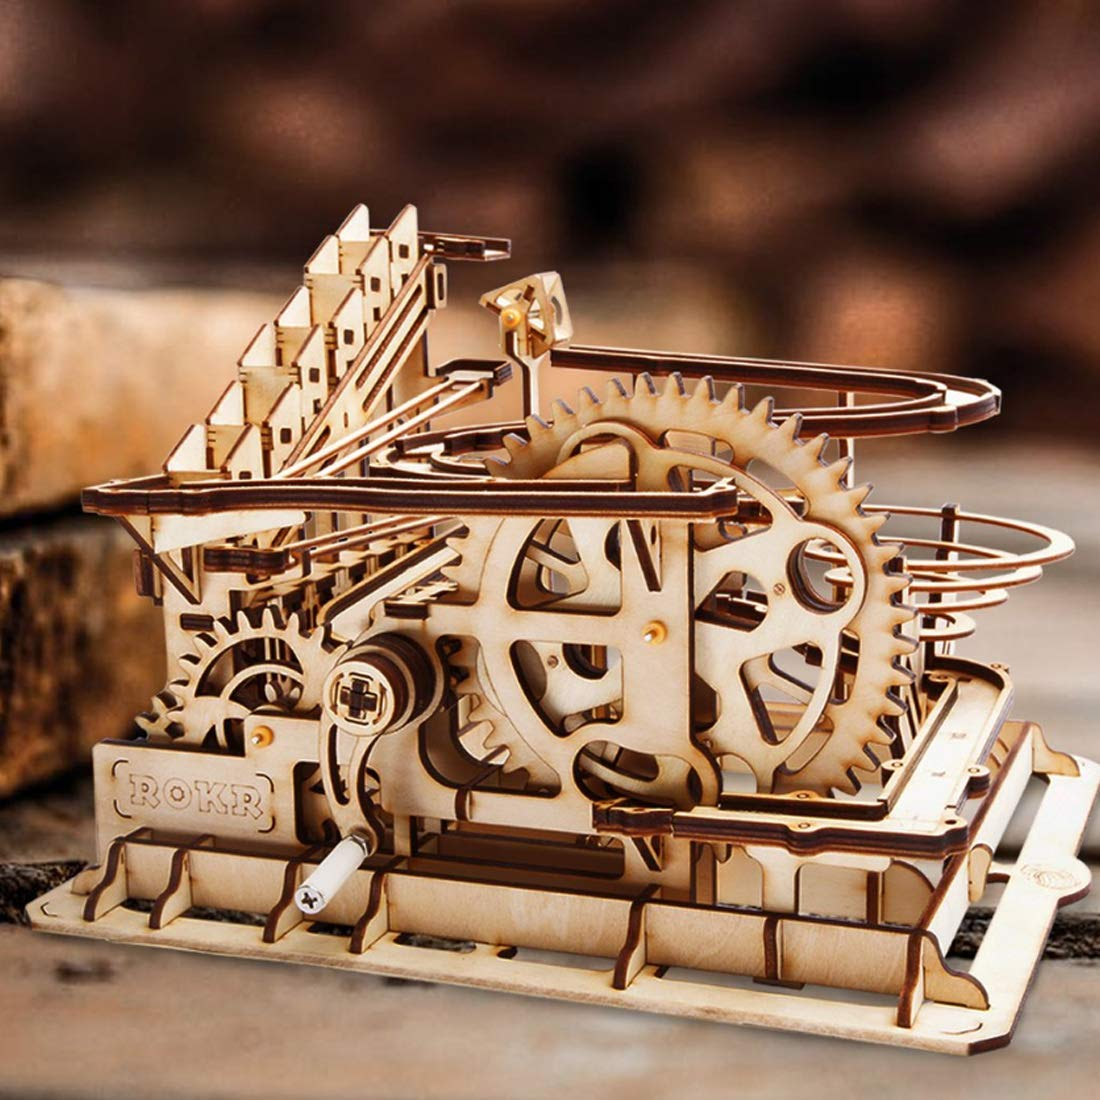 ROKR Marble Run Waterwheel Coaster 3D Puzzle 1